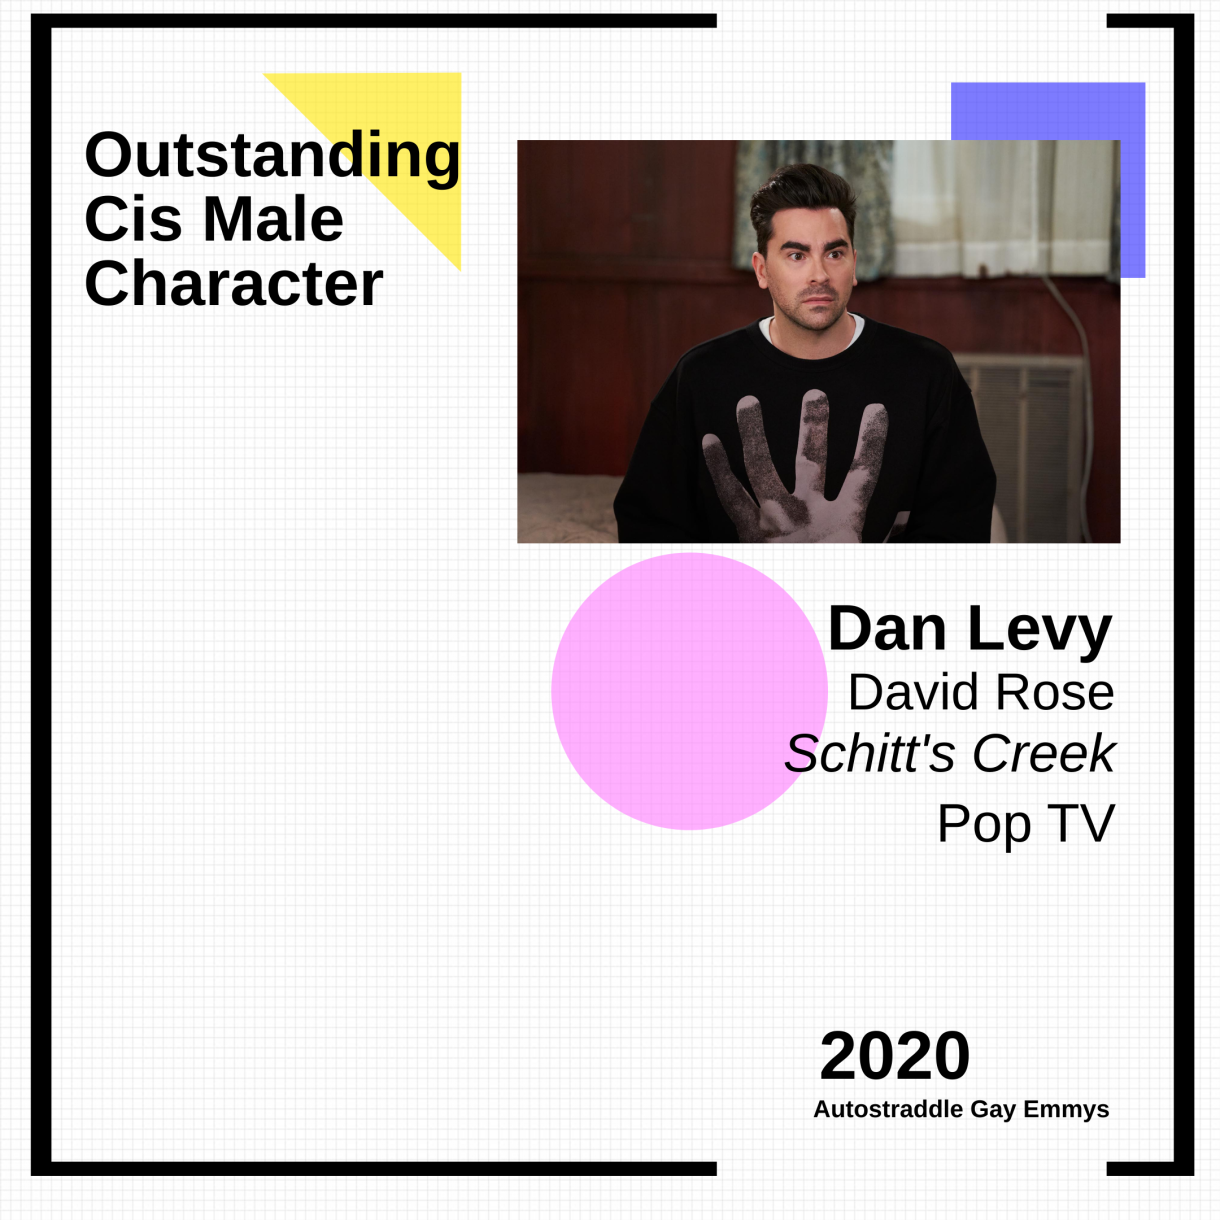 Colorful graphic announcing Outstanding Cis Male Character: Dan Levy as David Rose, Schitt's Creek. Pic of David in a black sweater with a giant hand on it.